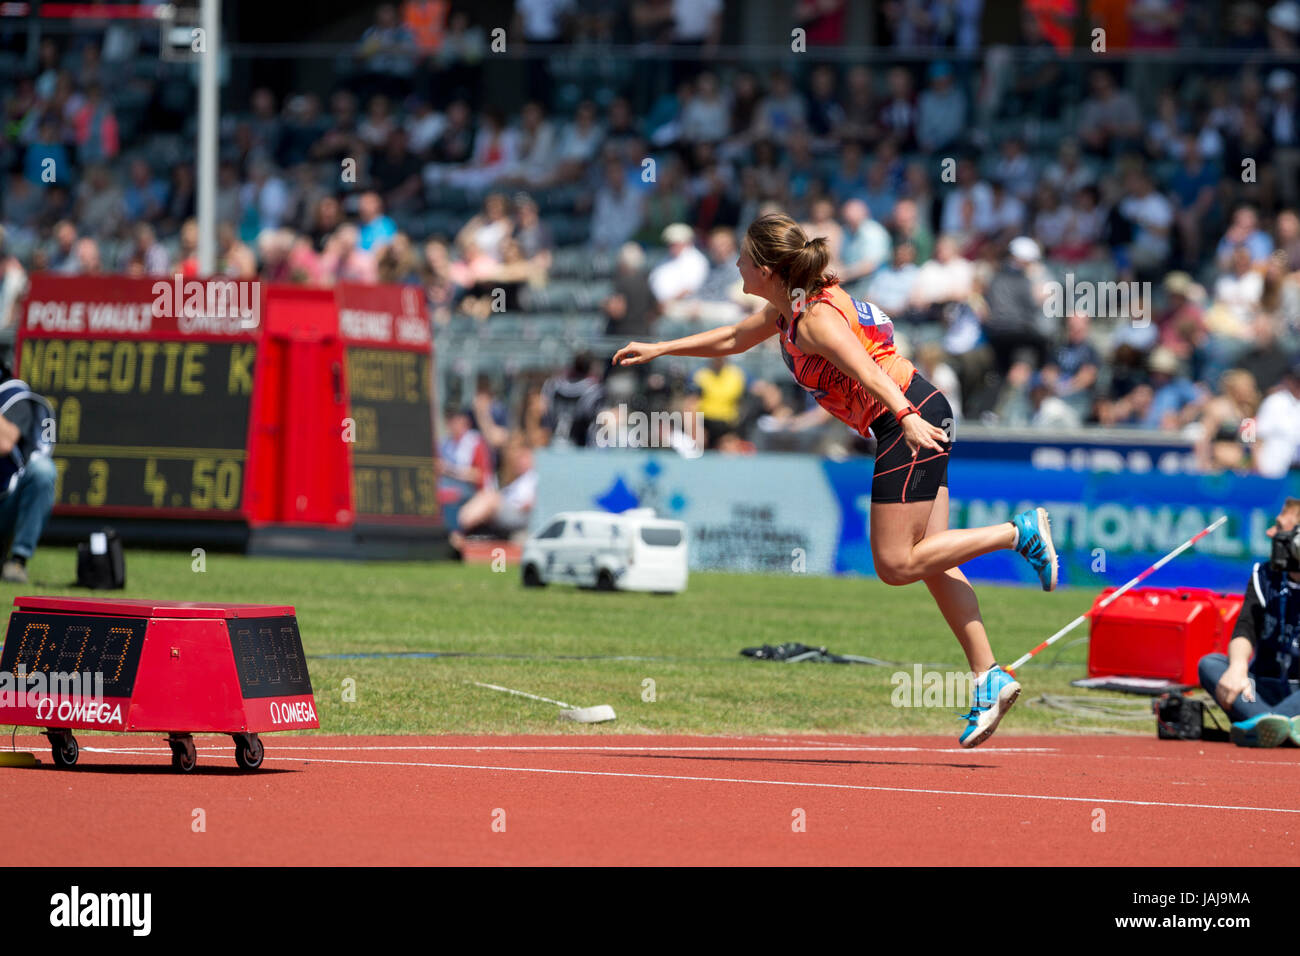 Goldie SAYERS competing in the Javelin at the 2016 Diamond League, Alexander Stadium, Birmingham, UK, 6th June 2016. - Stock Image